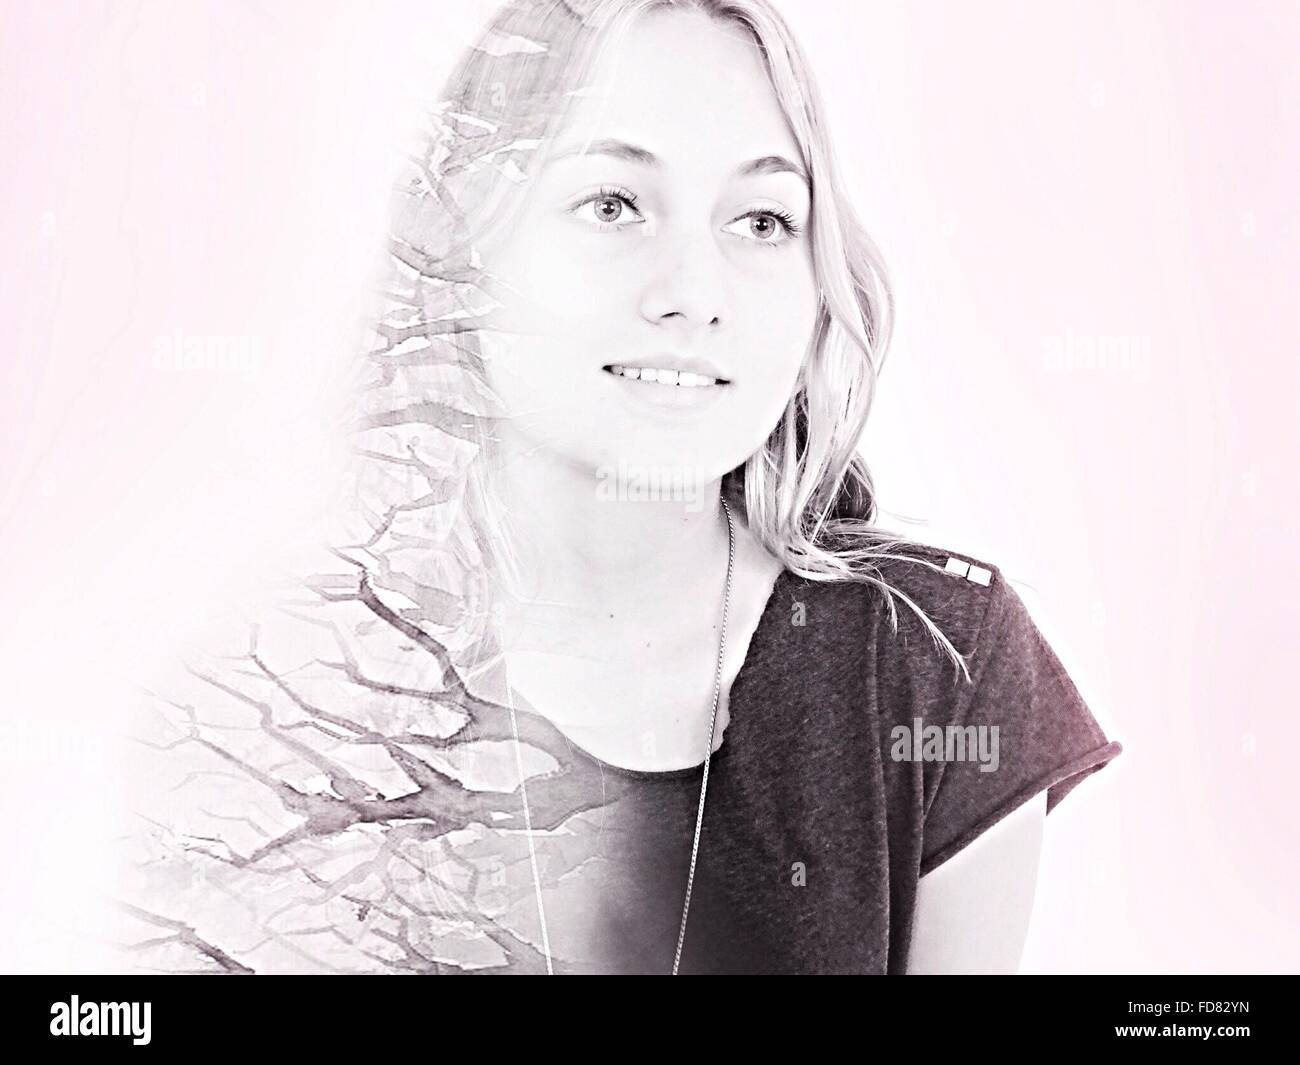 Digital Composite Of Smiling Woman And Tree - Stock Image